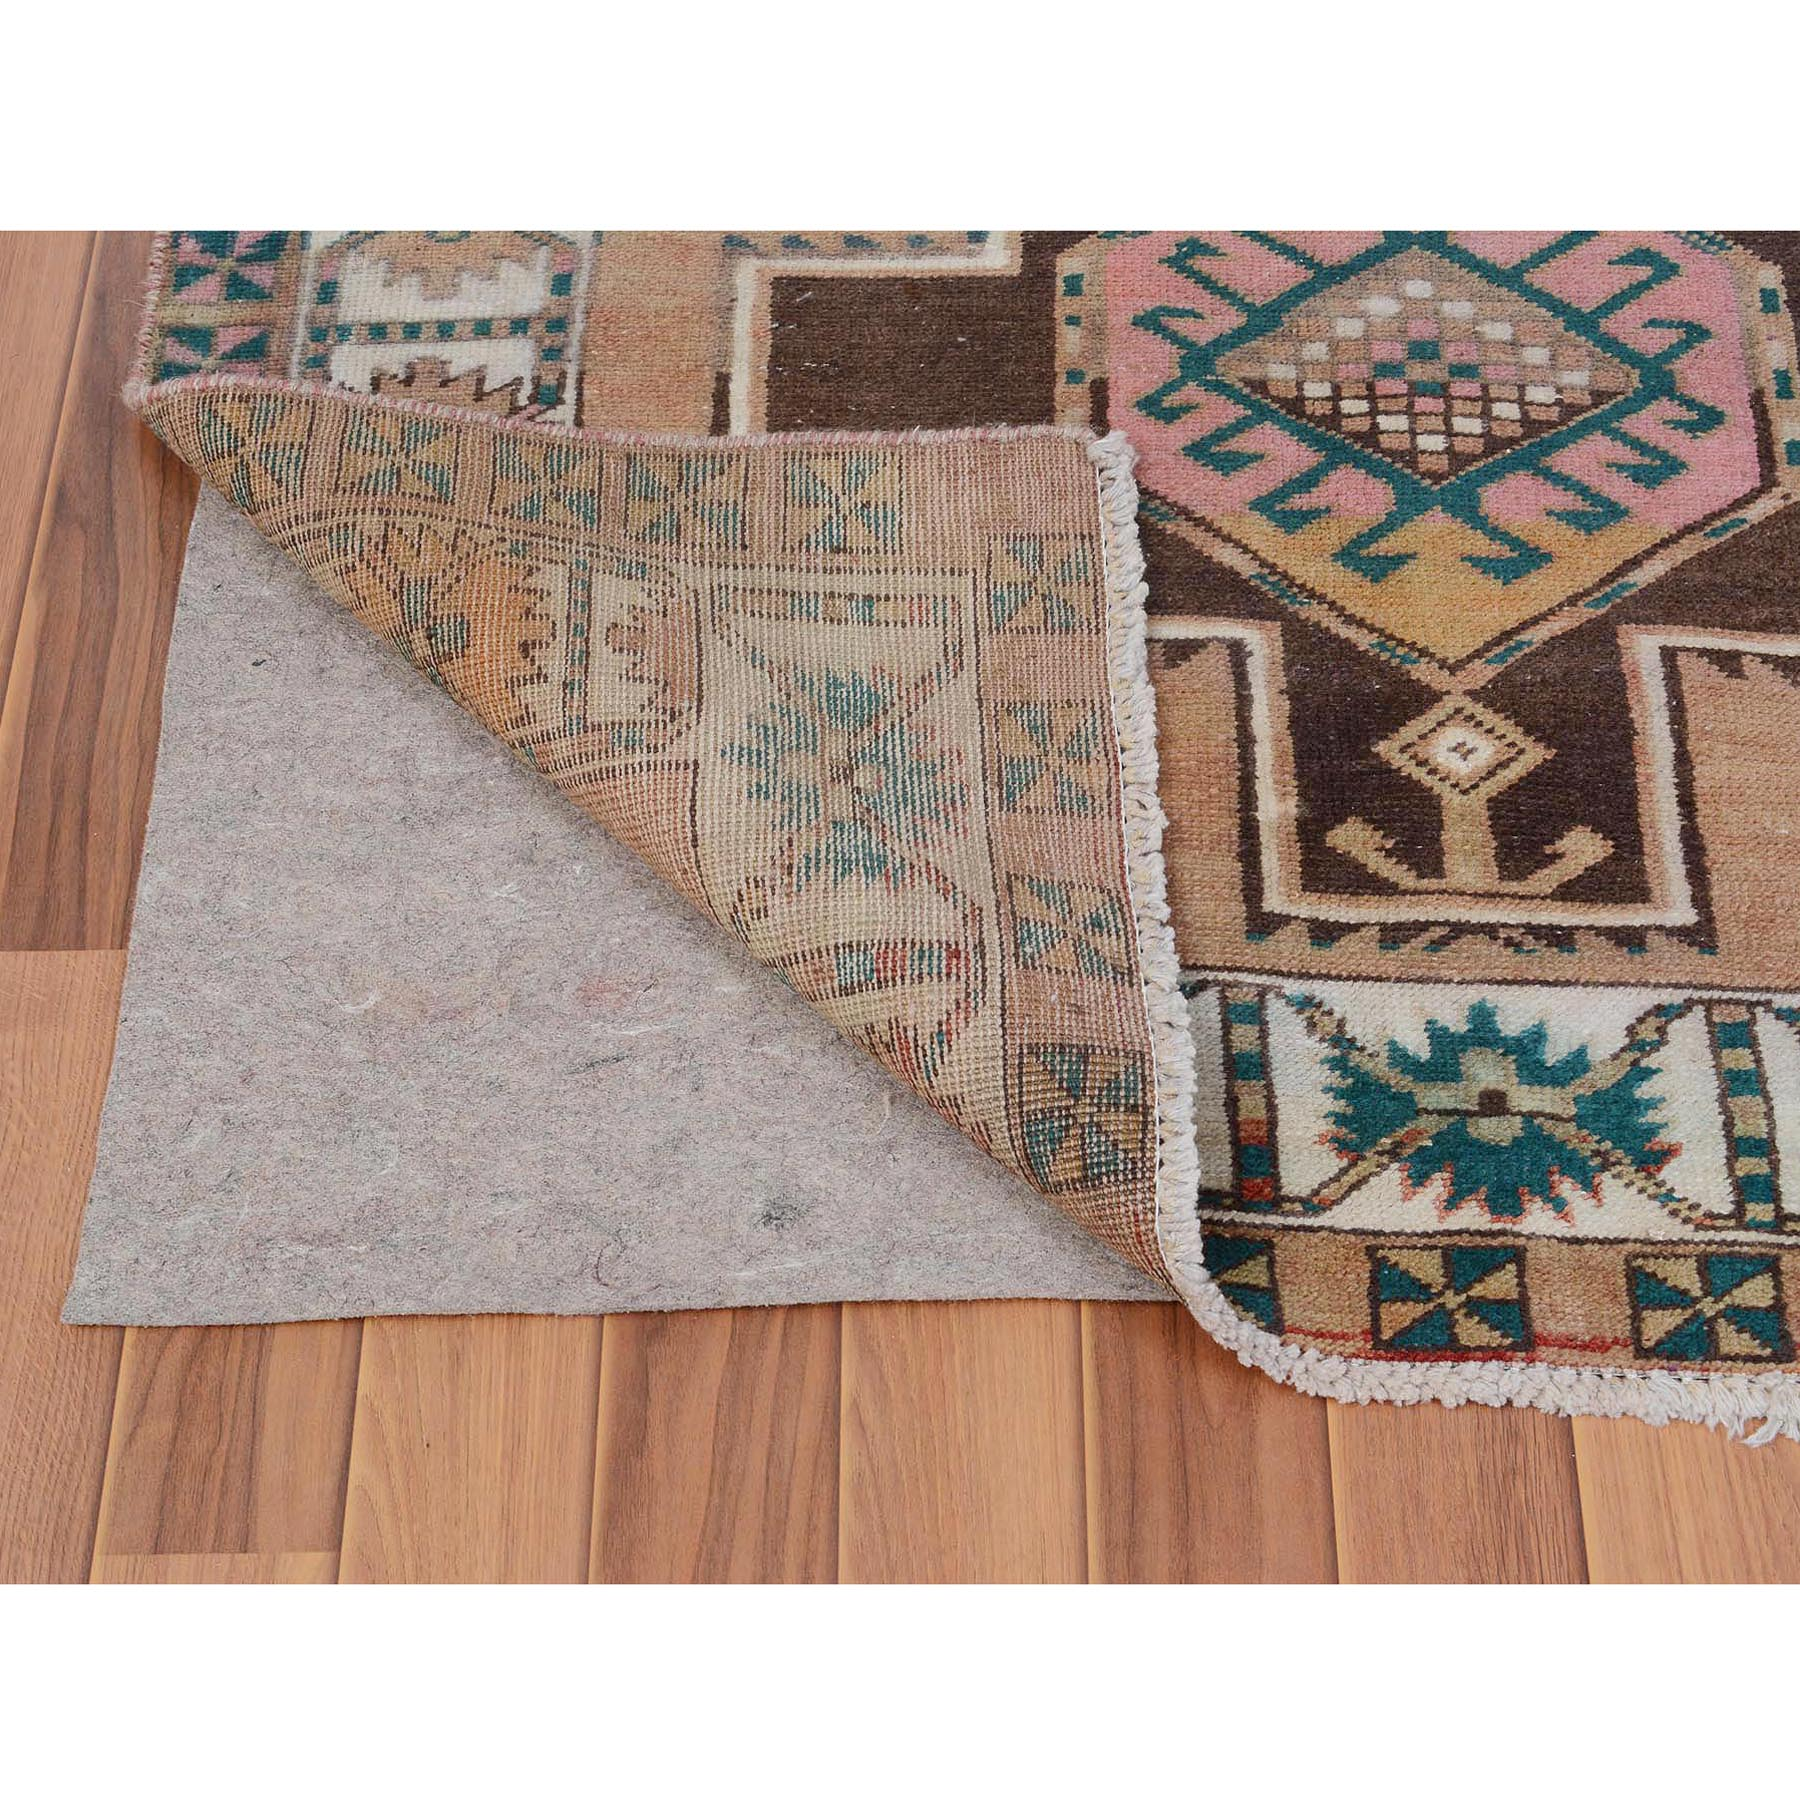 4-1 x10-7  Colorful Vintage and Worn Down Persian Karabakh Hand Knotted Runner Oriental Rug